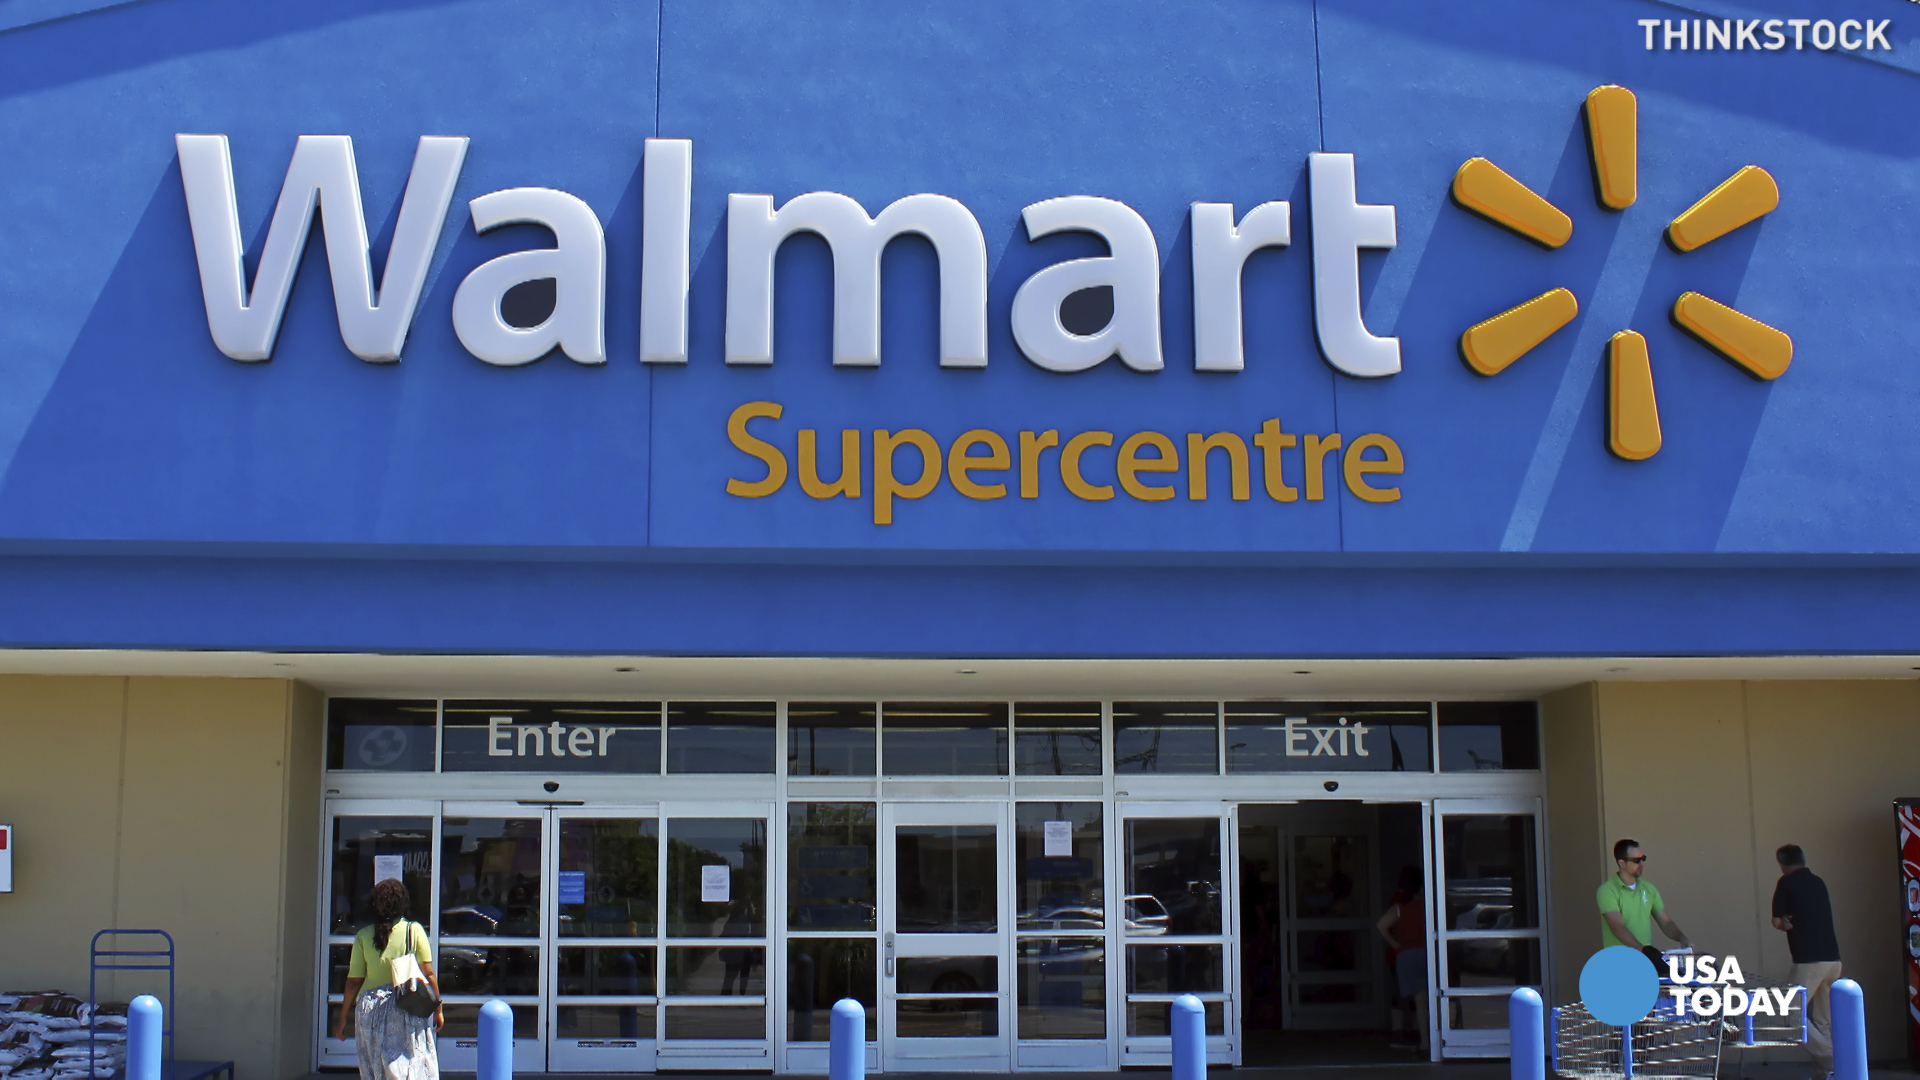 Deal expert Matt Granite shows you what not to buy at Walmart.